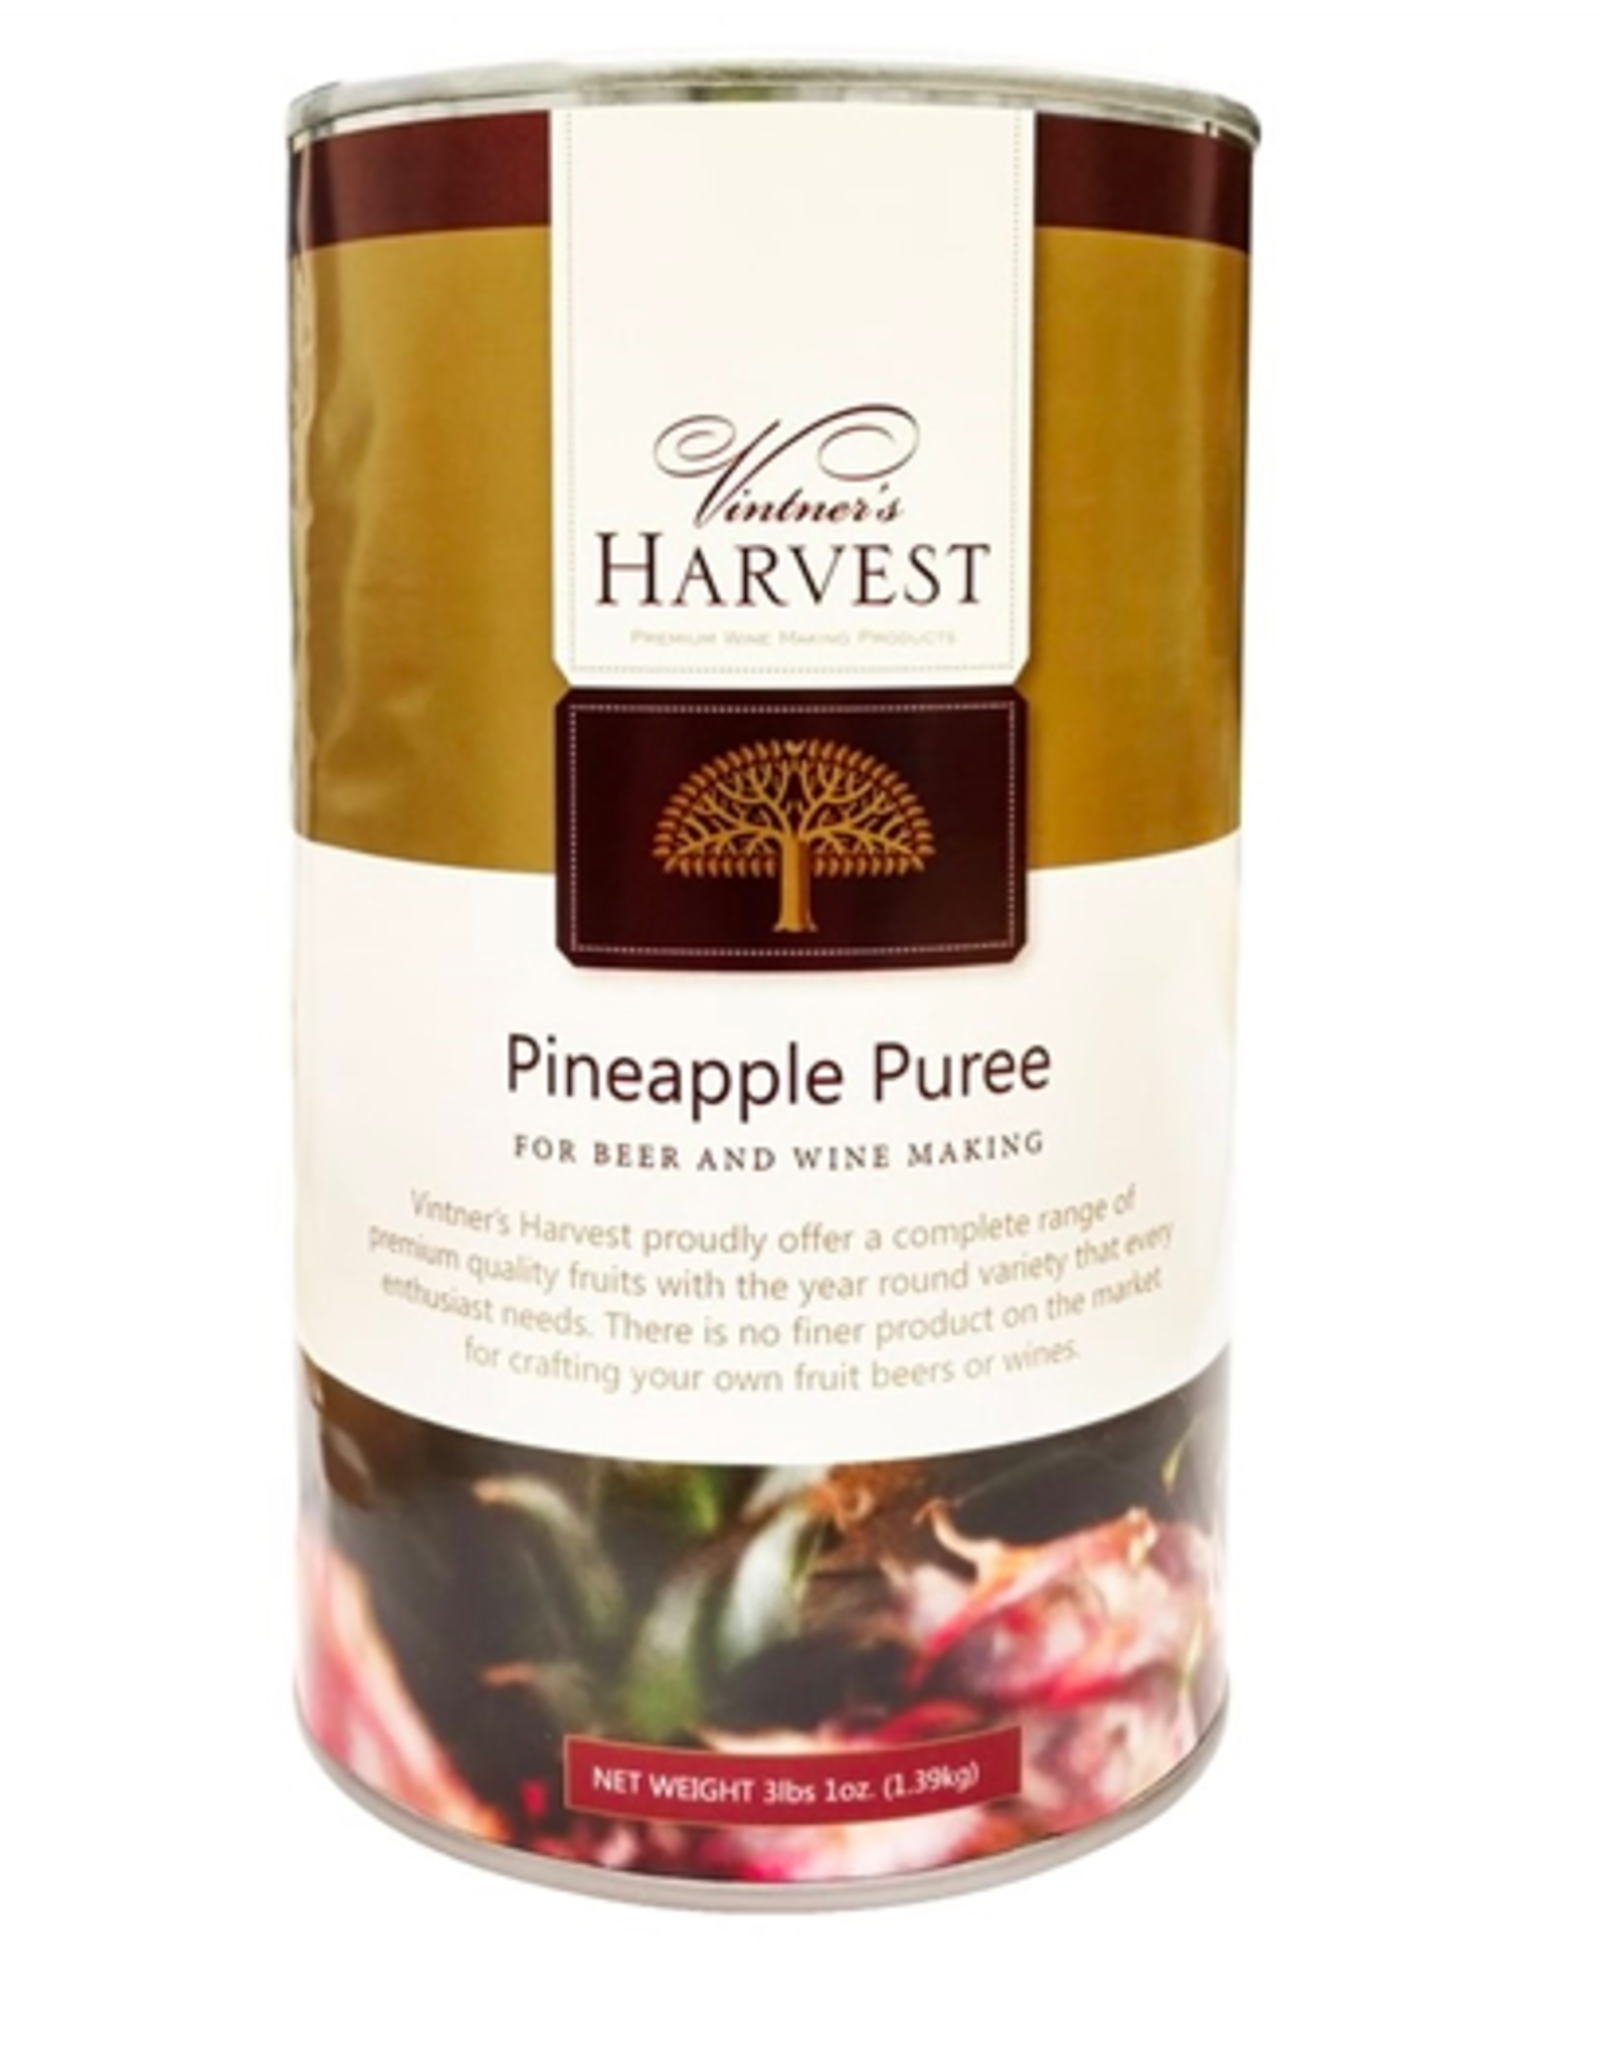 PINEAPPLE PUREE 3 lbs